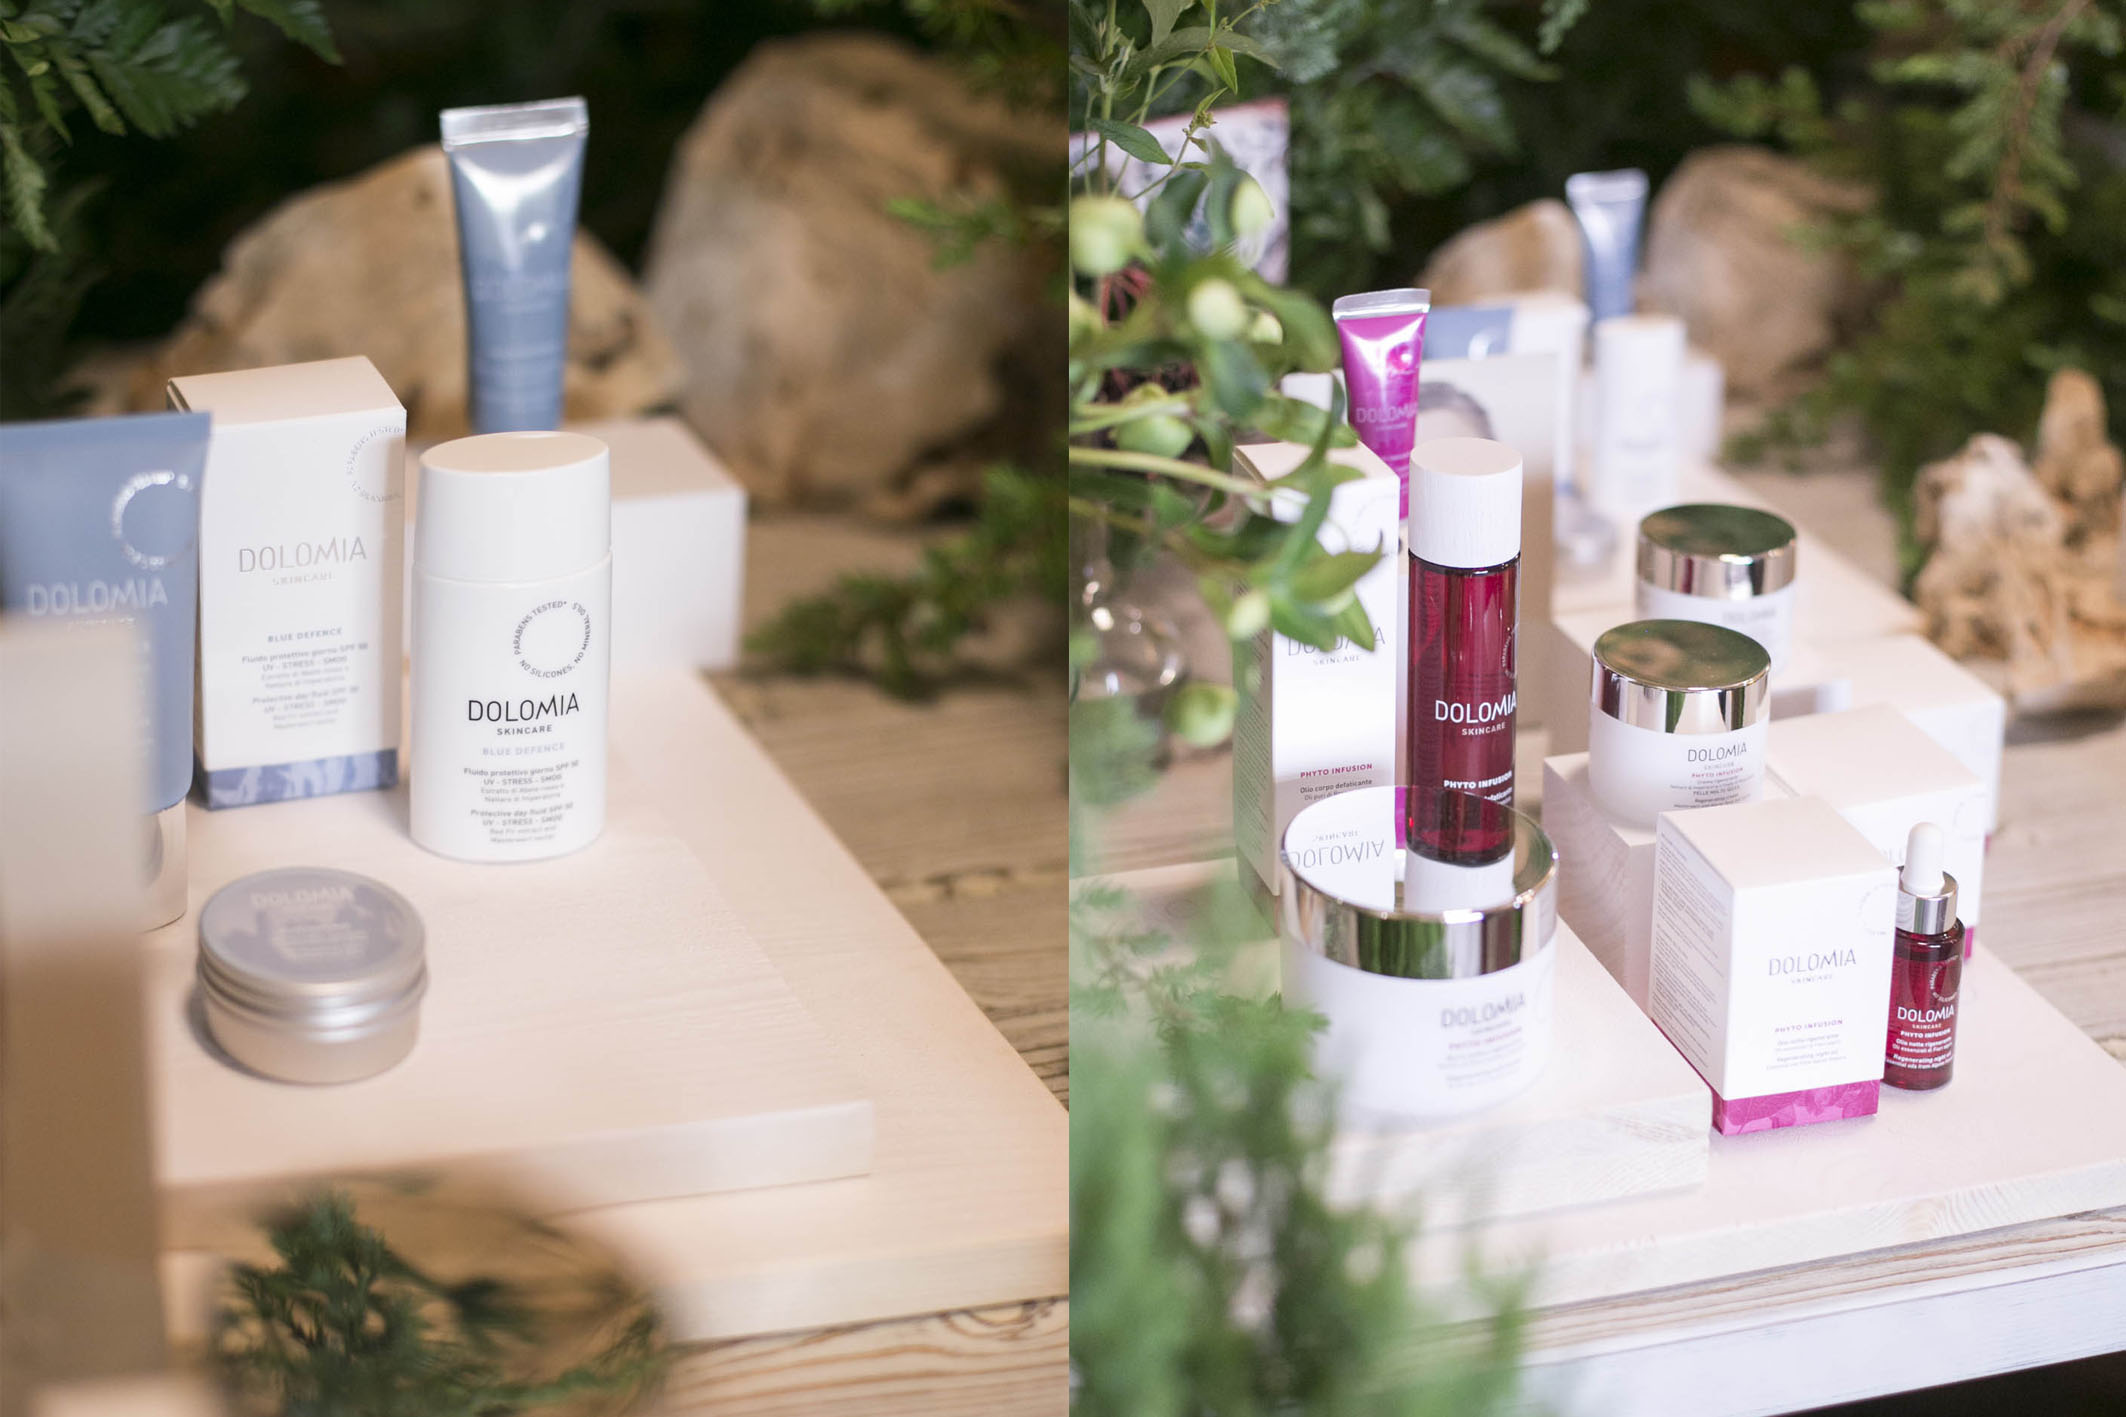 Dolomia Skincare new launch set styling project @ Fioraio Bianchi 05